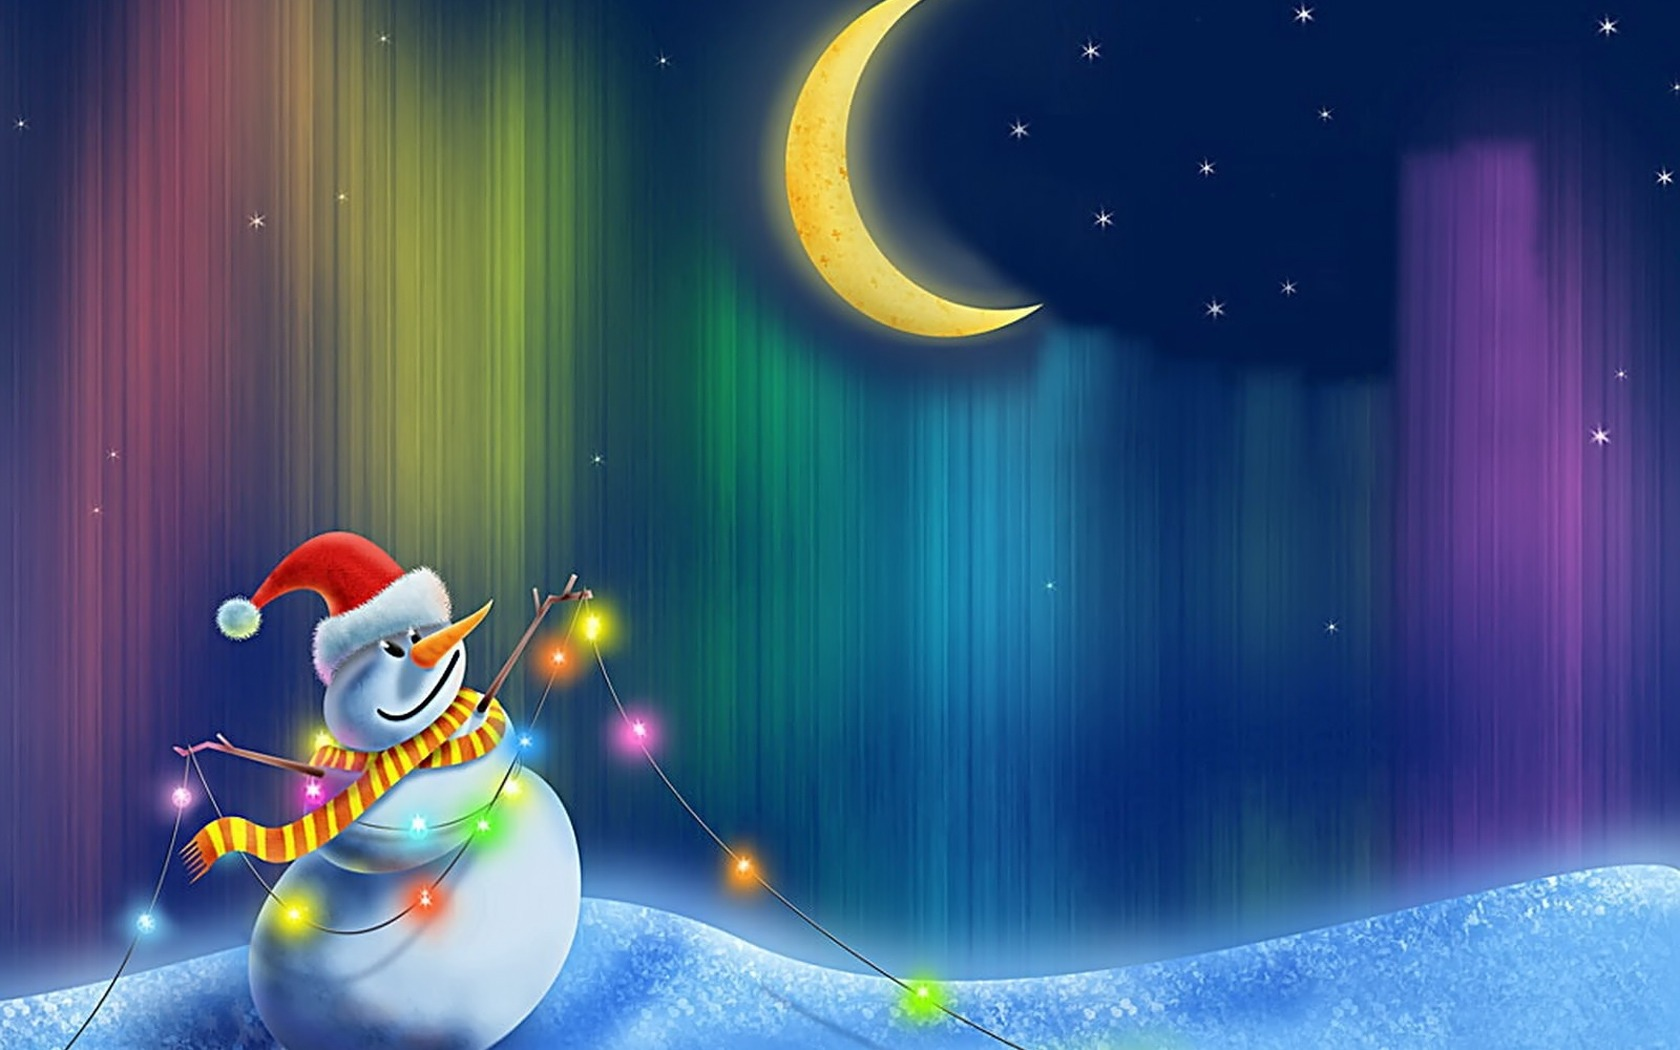 Animated Christmas Backgrounds Images amp Pictures   Becuo 1680x1050